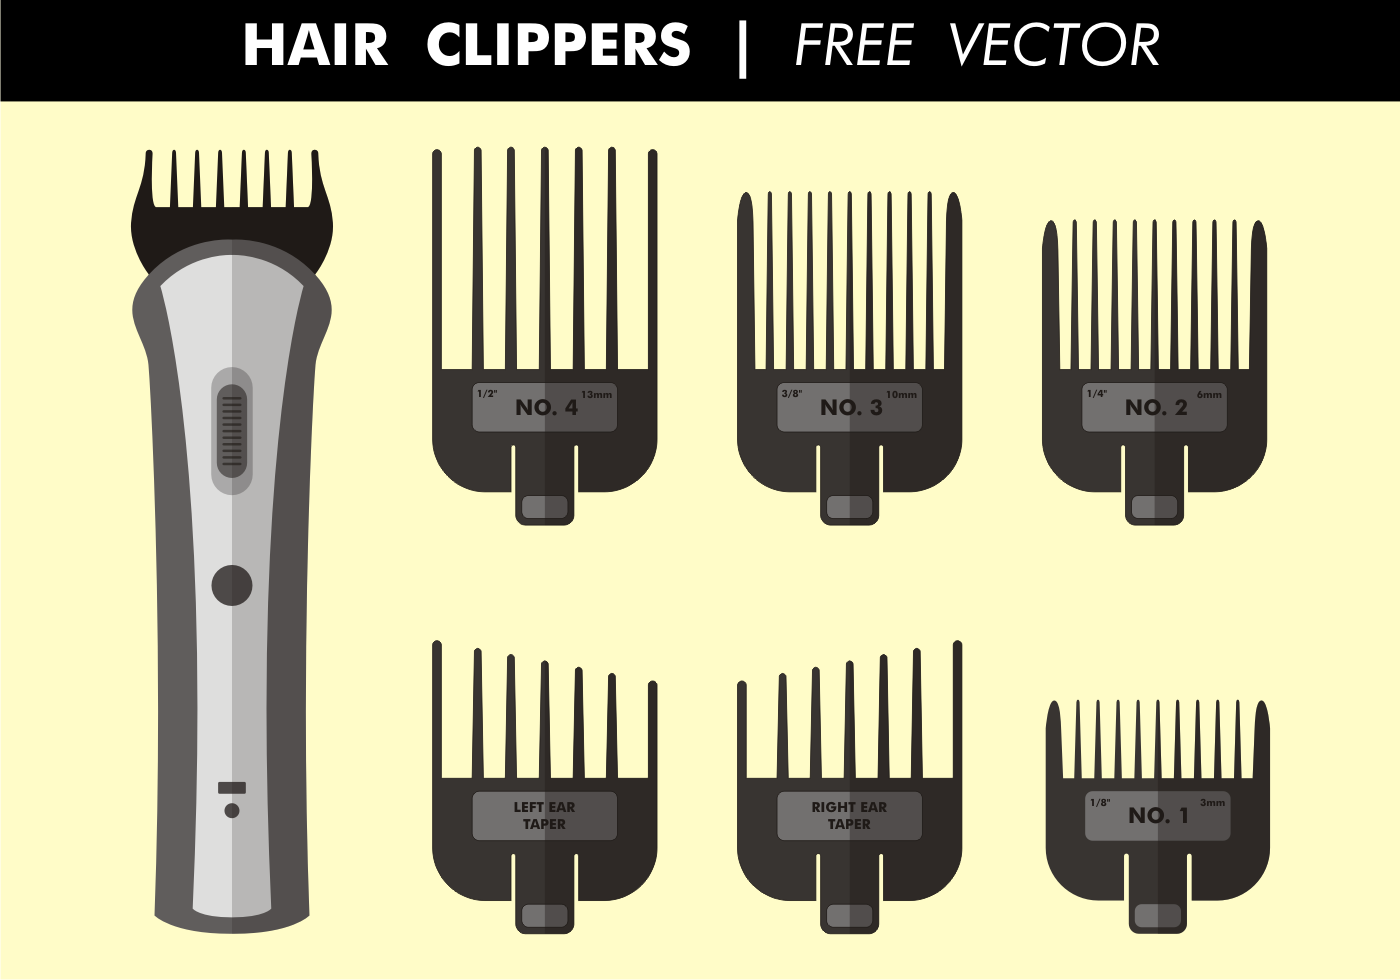 Hair Clippers Free Vector - Download Free Vector Art ...